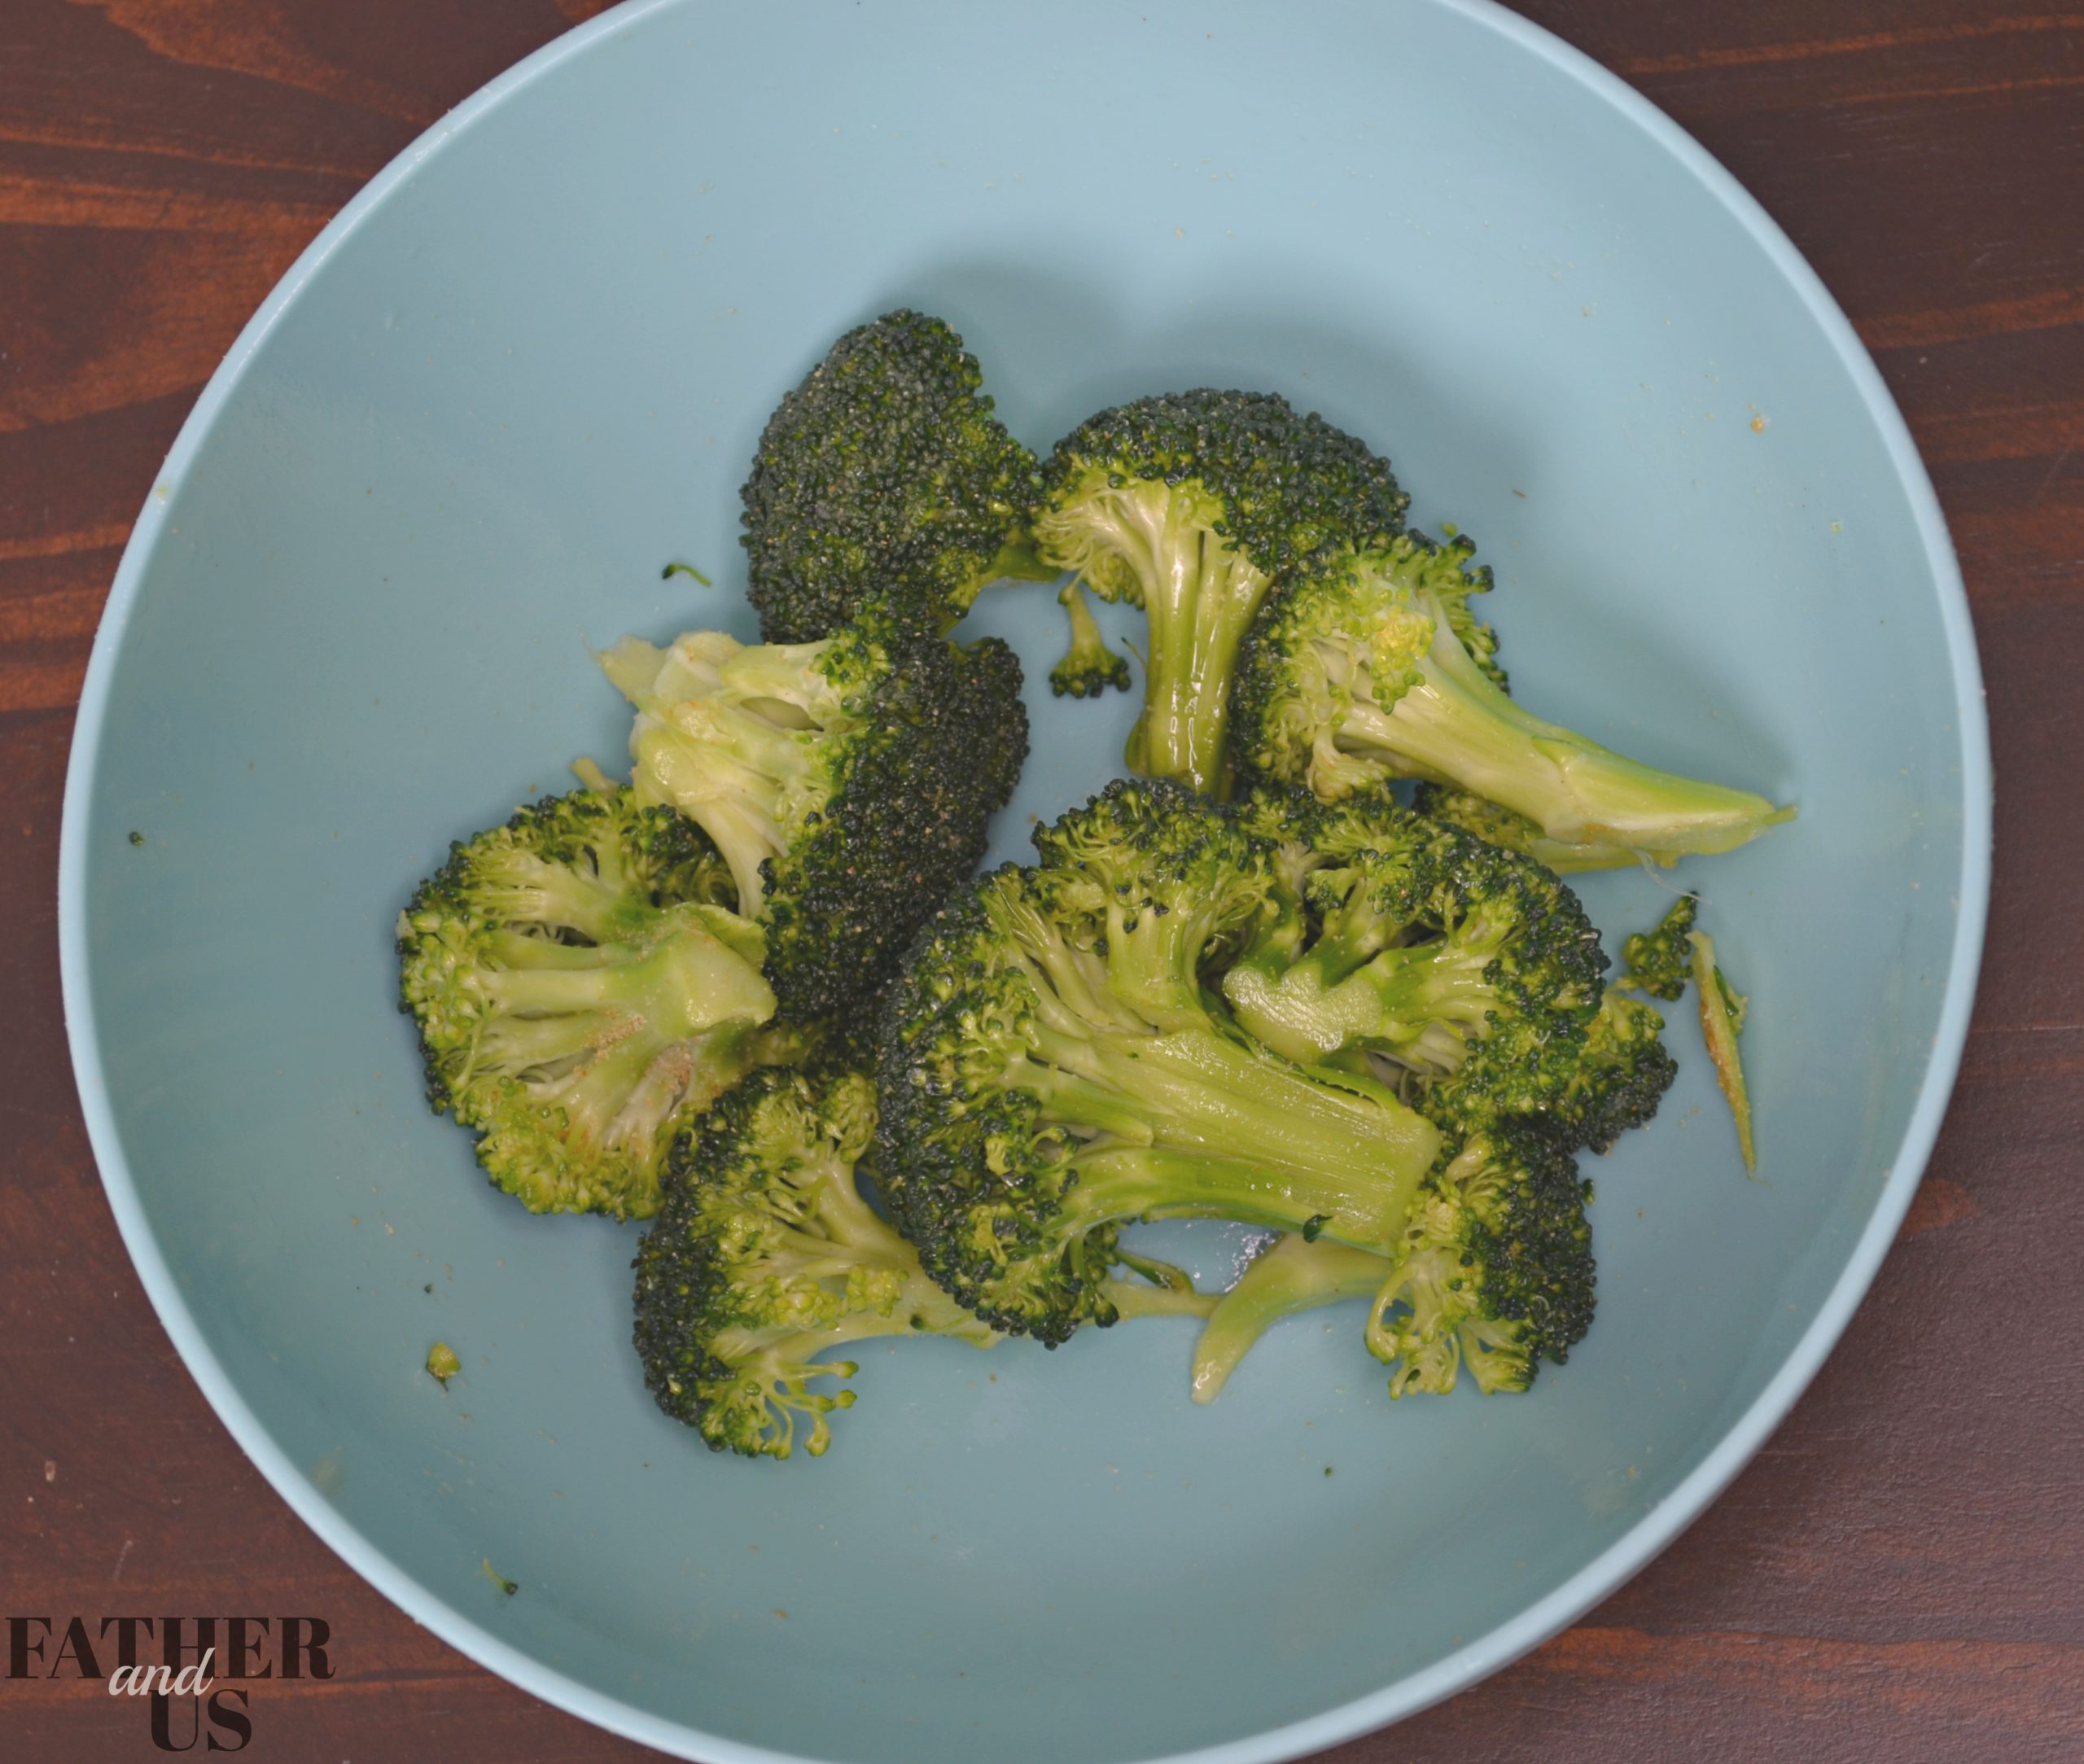 making Air Fryer Broccoli involves mixing the vegetables, oil and seasonings together before cookinig